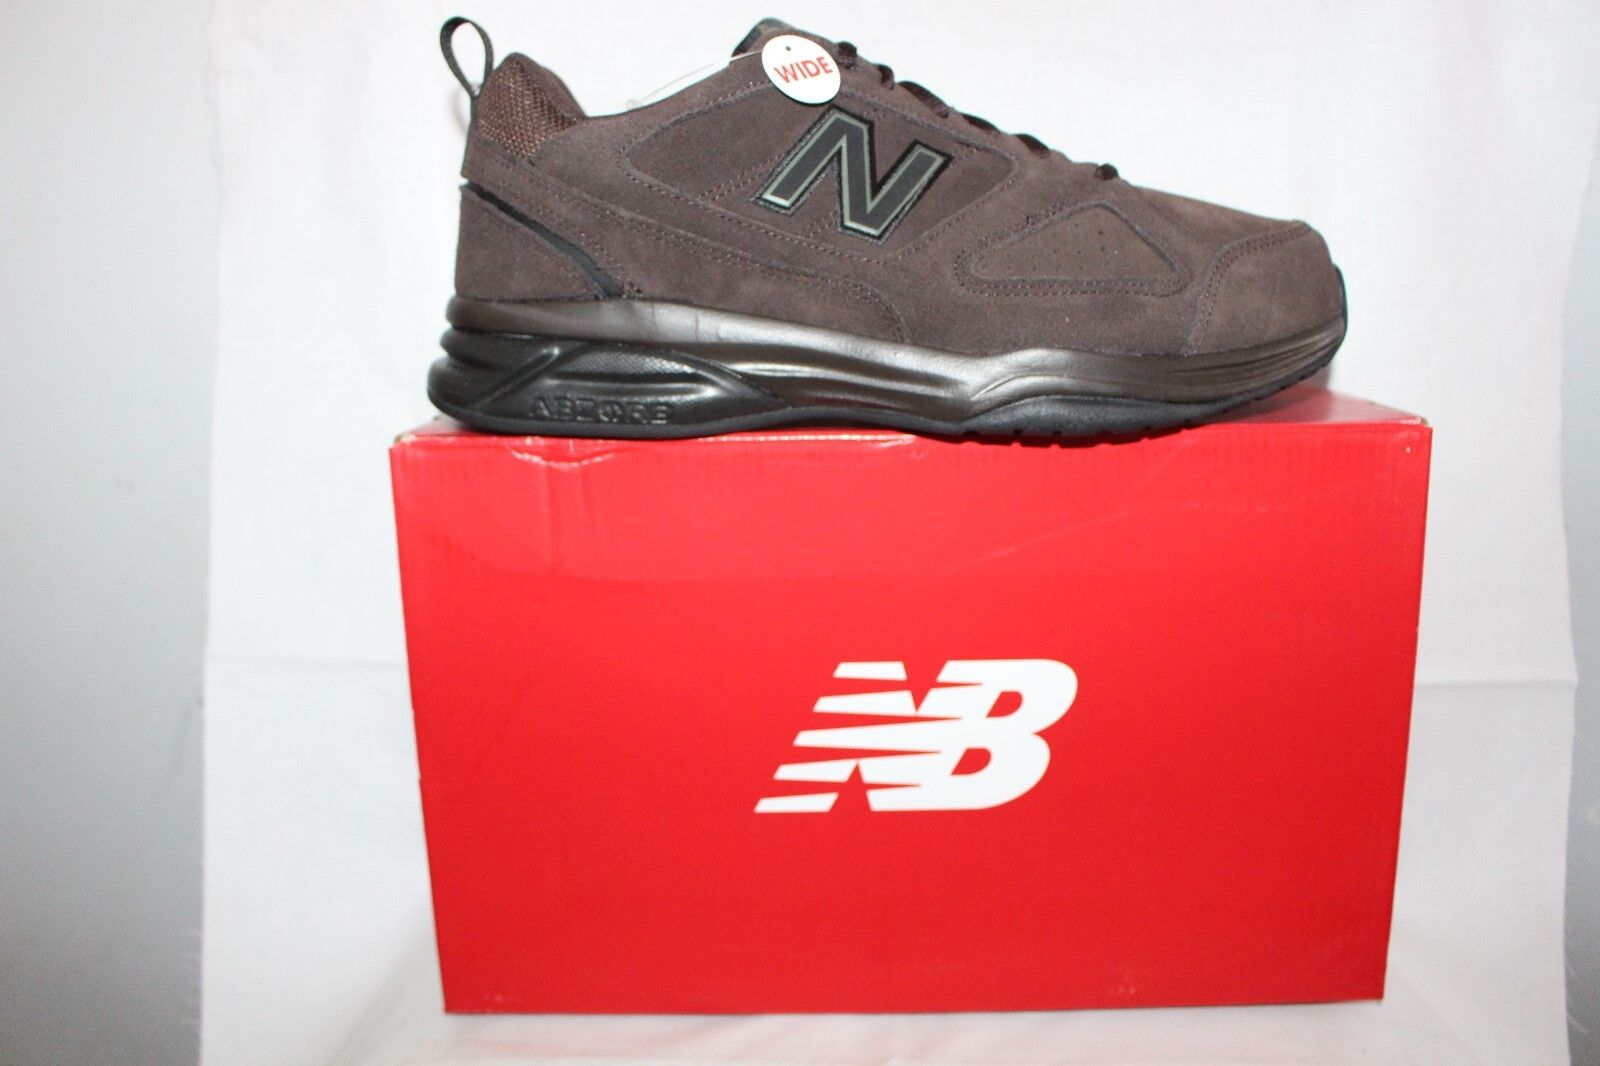 MENS SHOES FOOTWEAR - New Balance Joggers MX624 BROWN